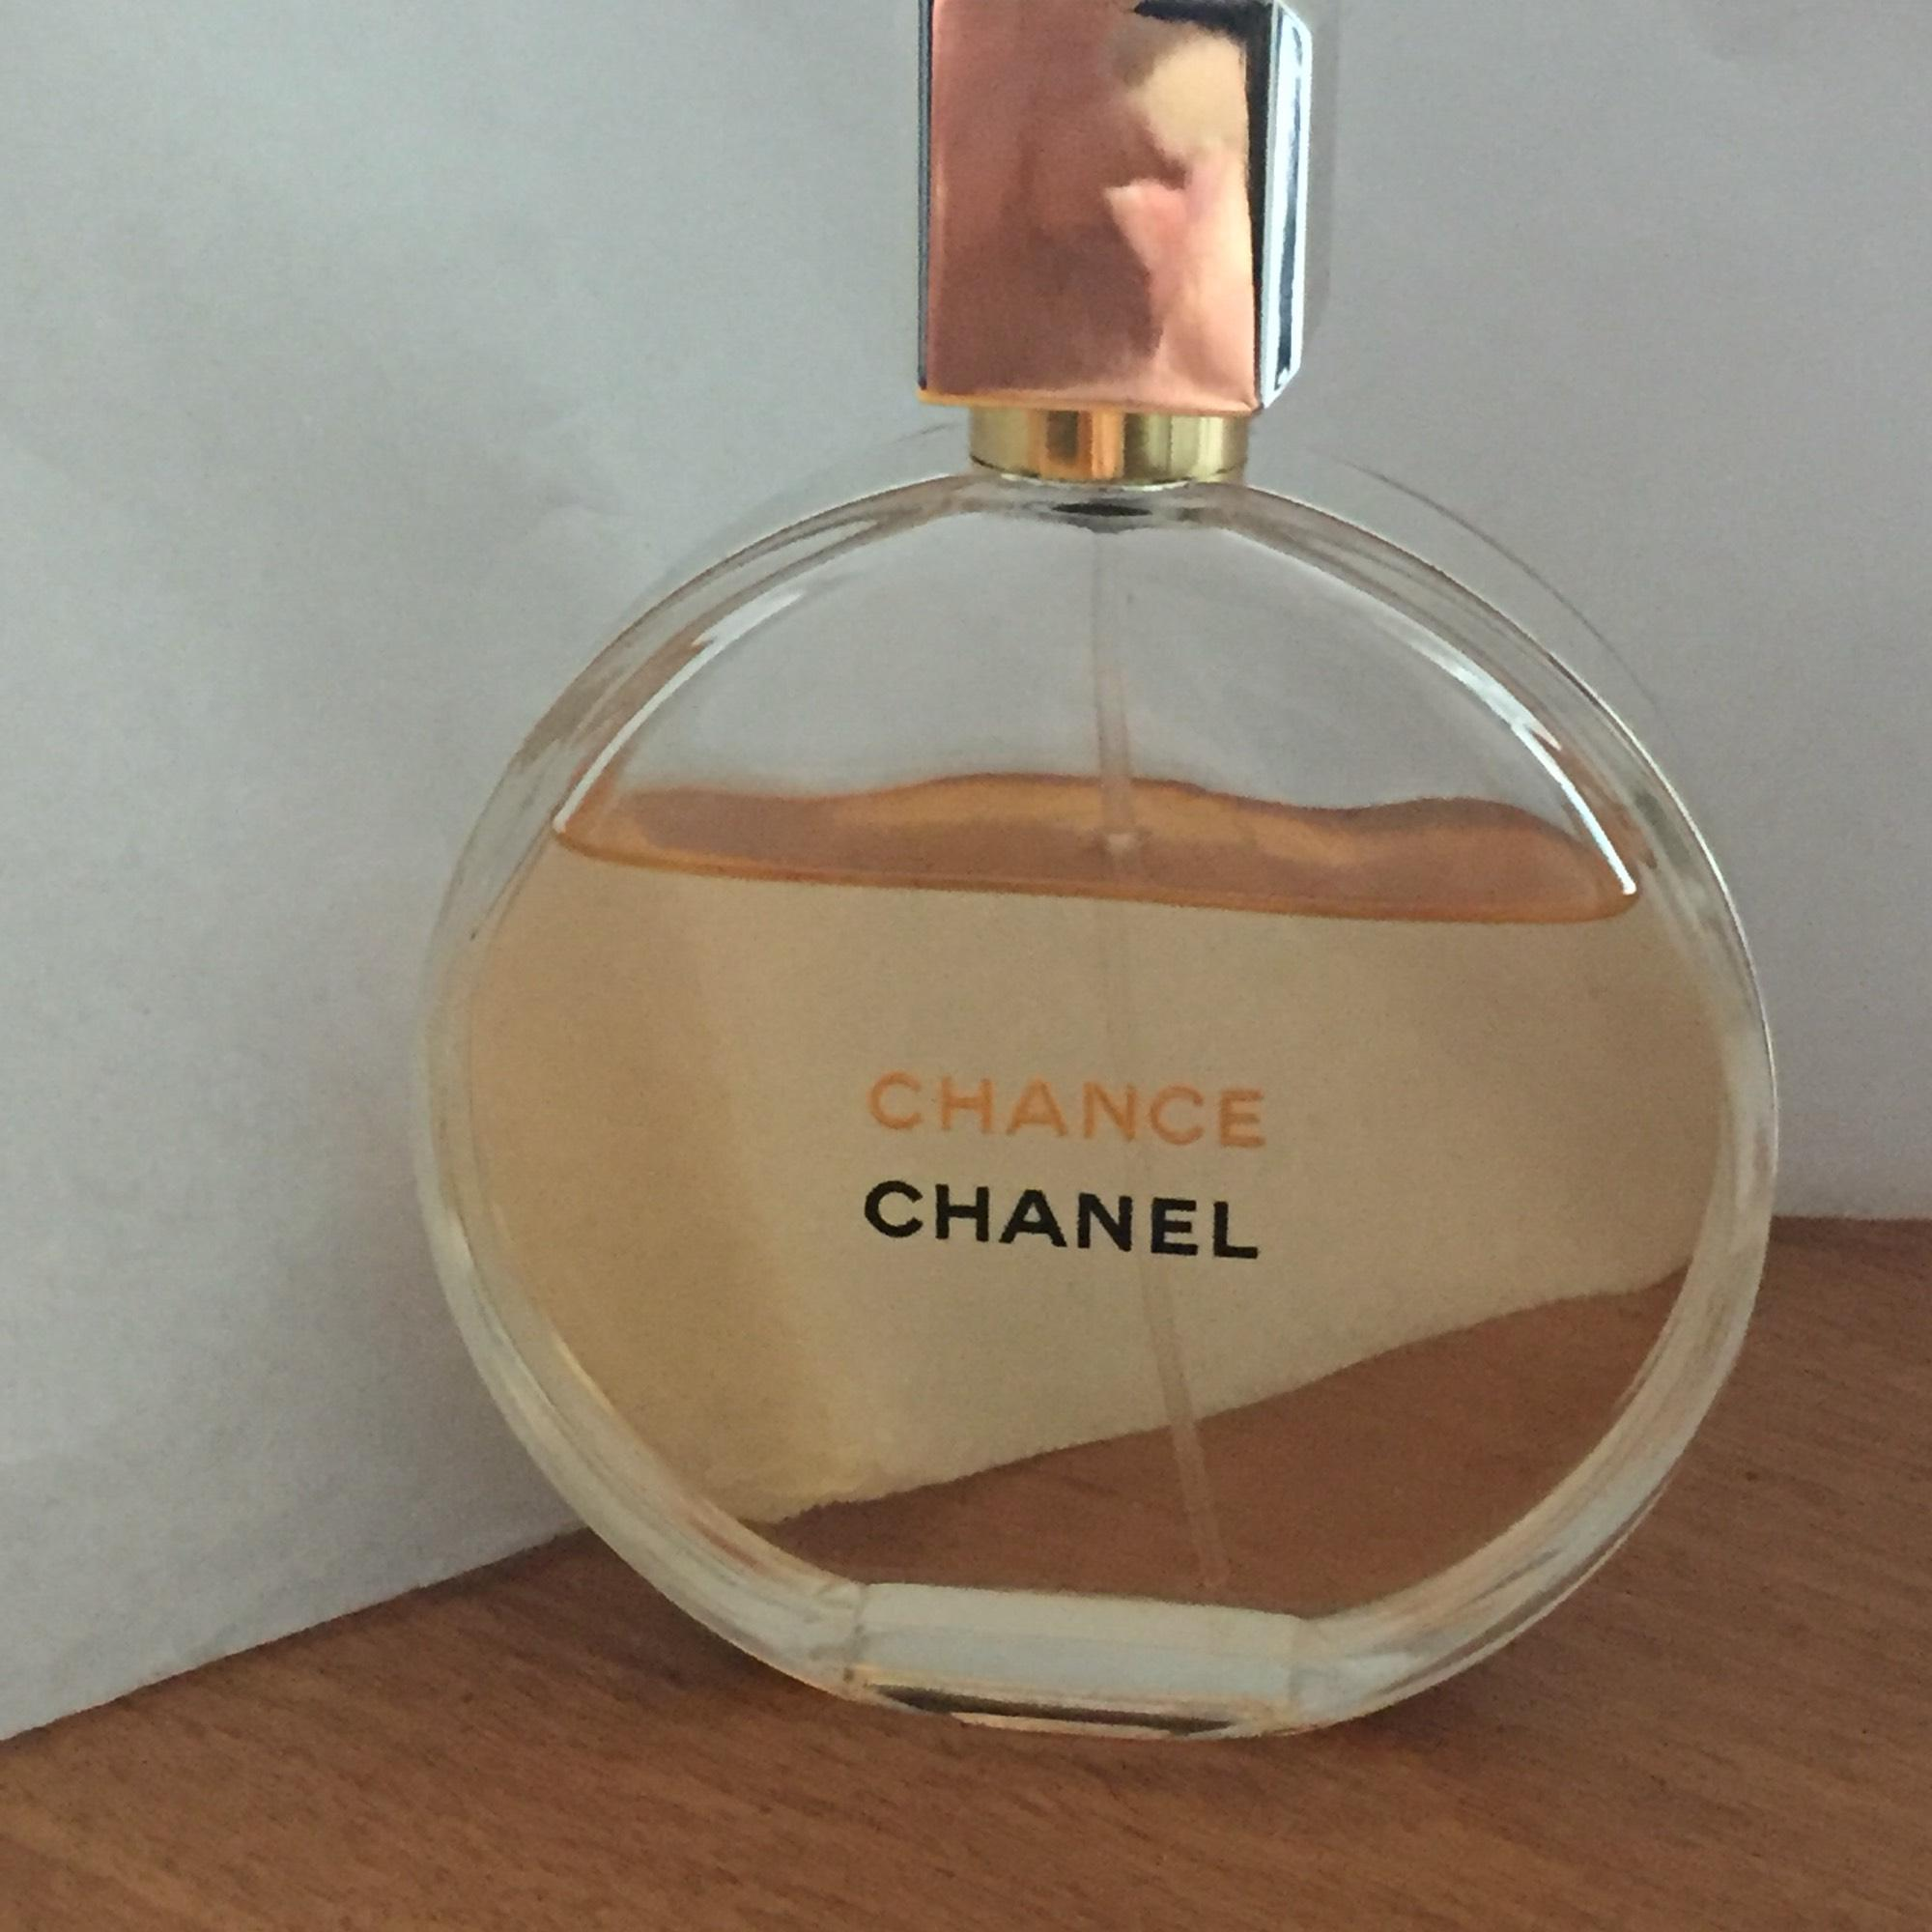 Chanel Chance Eau de Parfum spray 3.4 oz